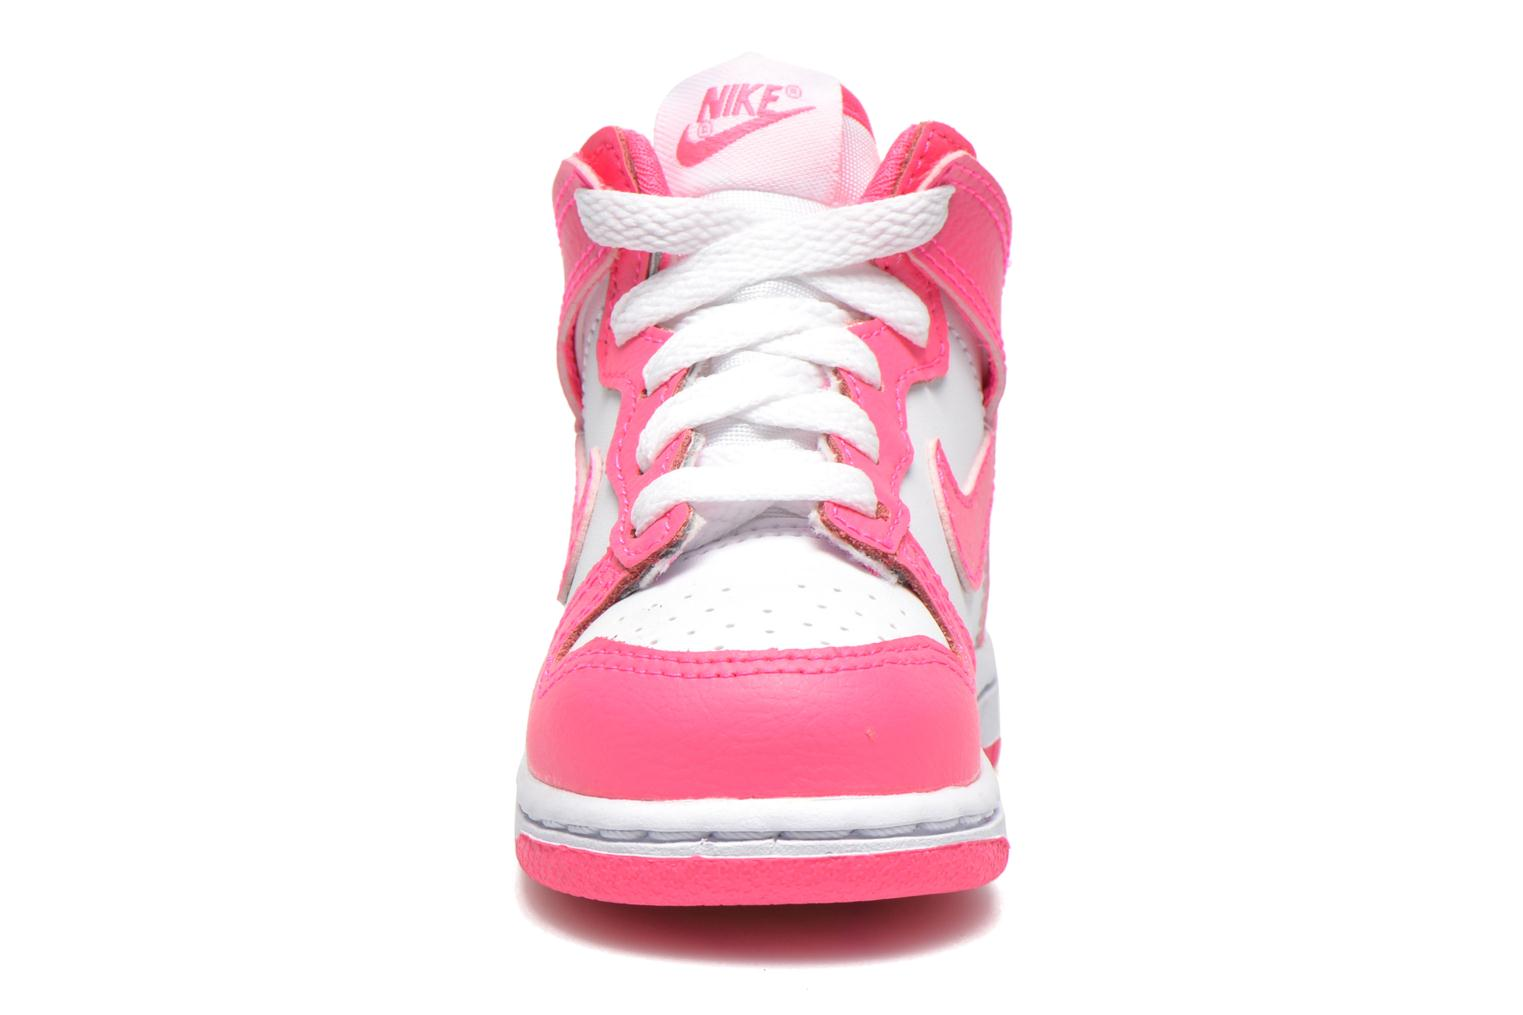 Nike Dunk High Nd (Td) White/Pink Pow